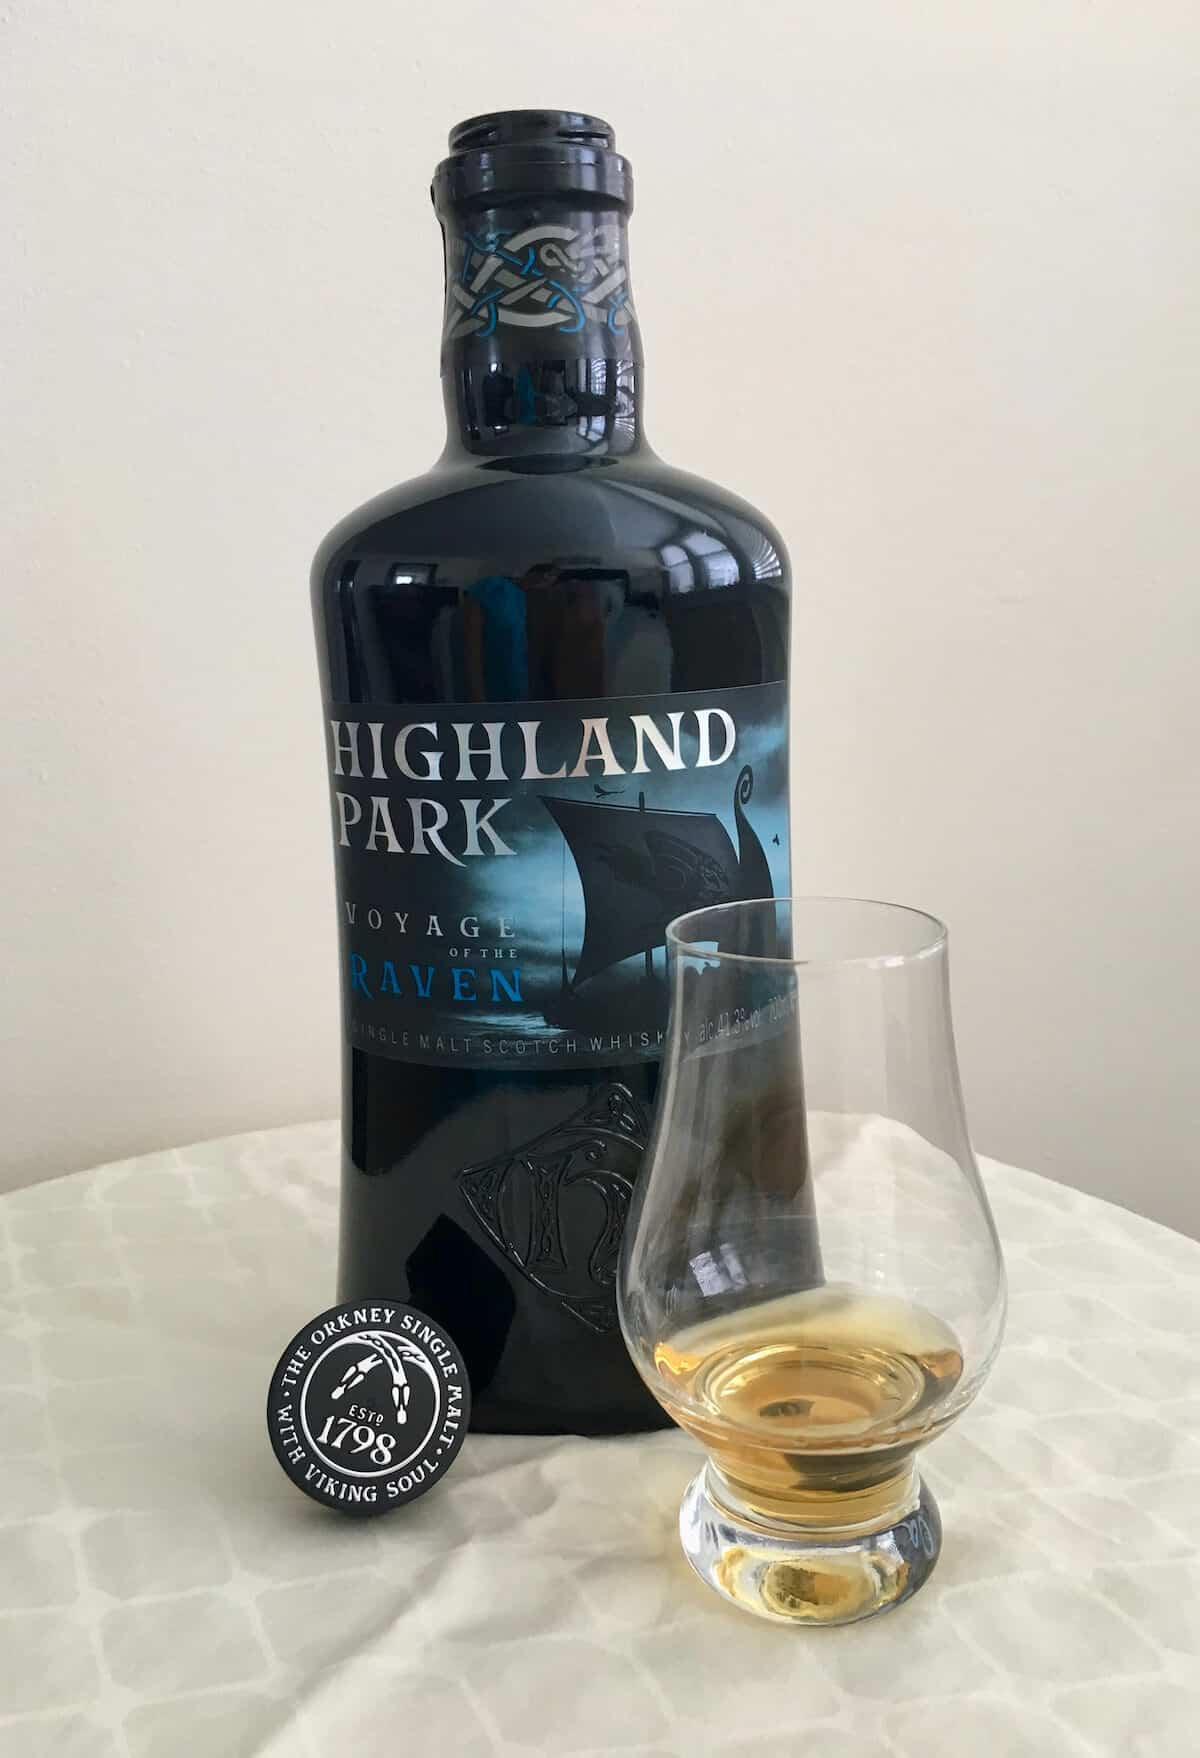 Highland Park Voyage of the Raven in bottle with a poured glass on a table.